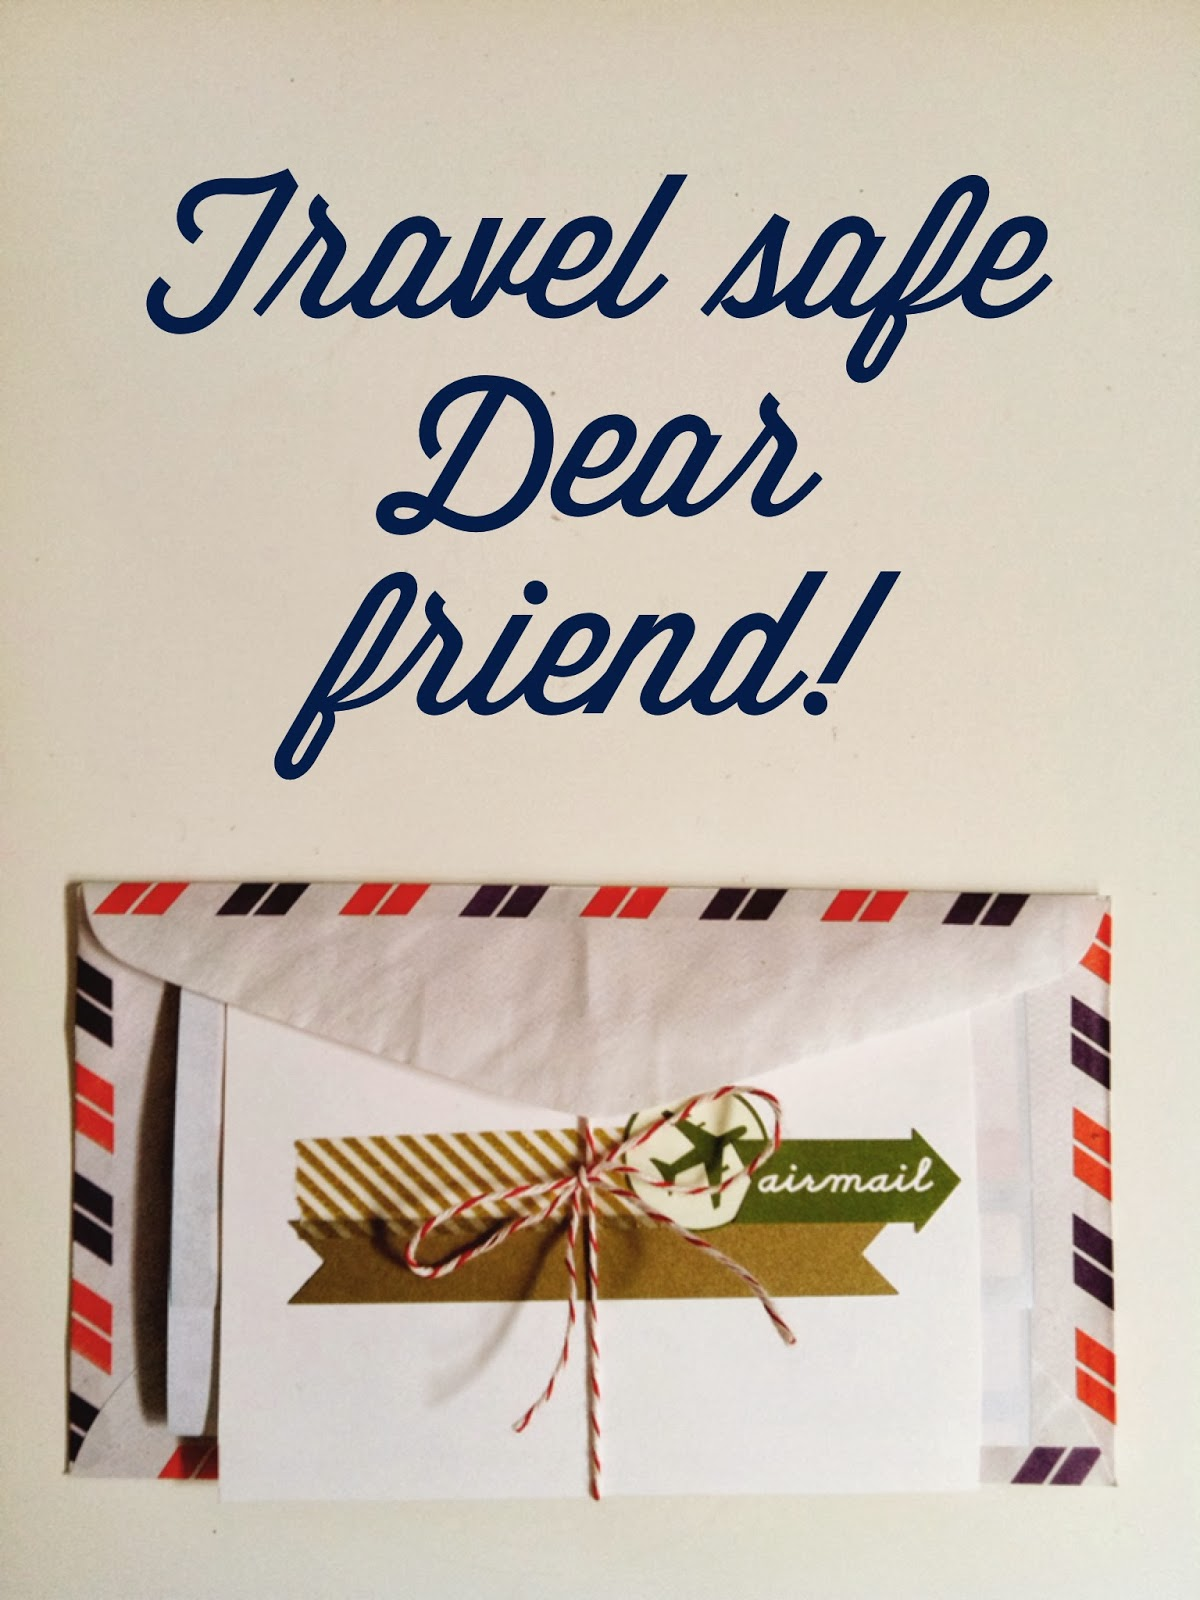 Raeandella bon voyage wanderlust i made the bon voyage card and added two little travel checklist for my dear friend and one for her boyfriend it was a quick thoughtful craft goodie to kristyandbryce Image collections